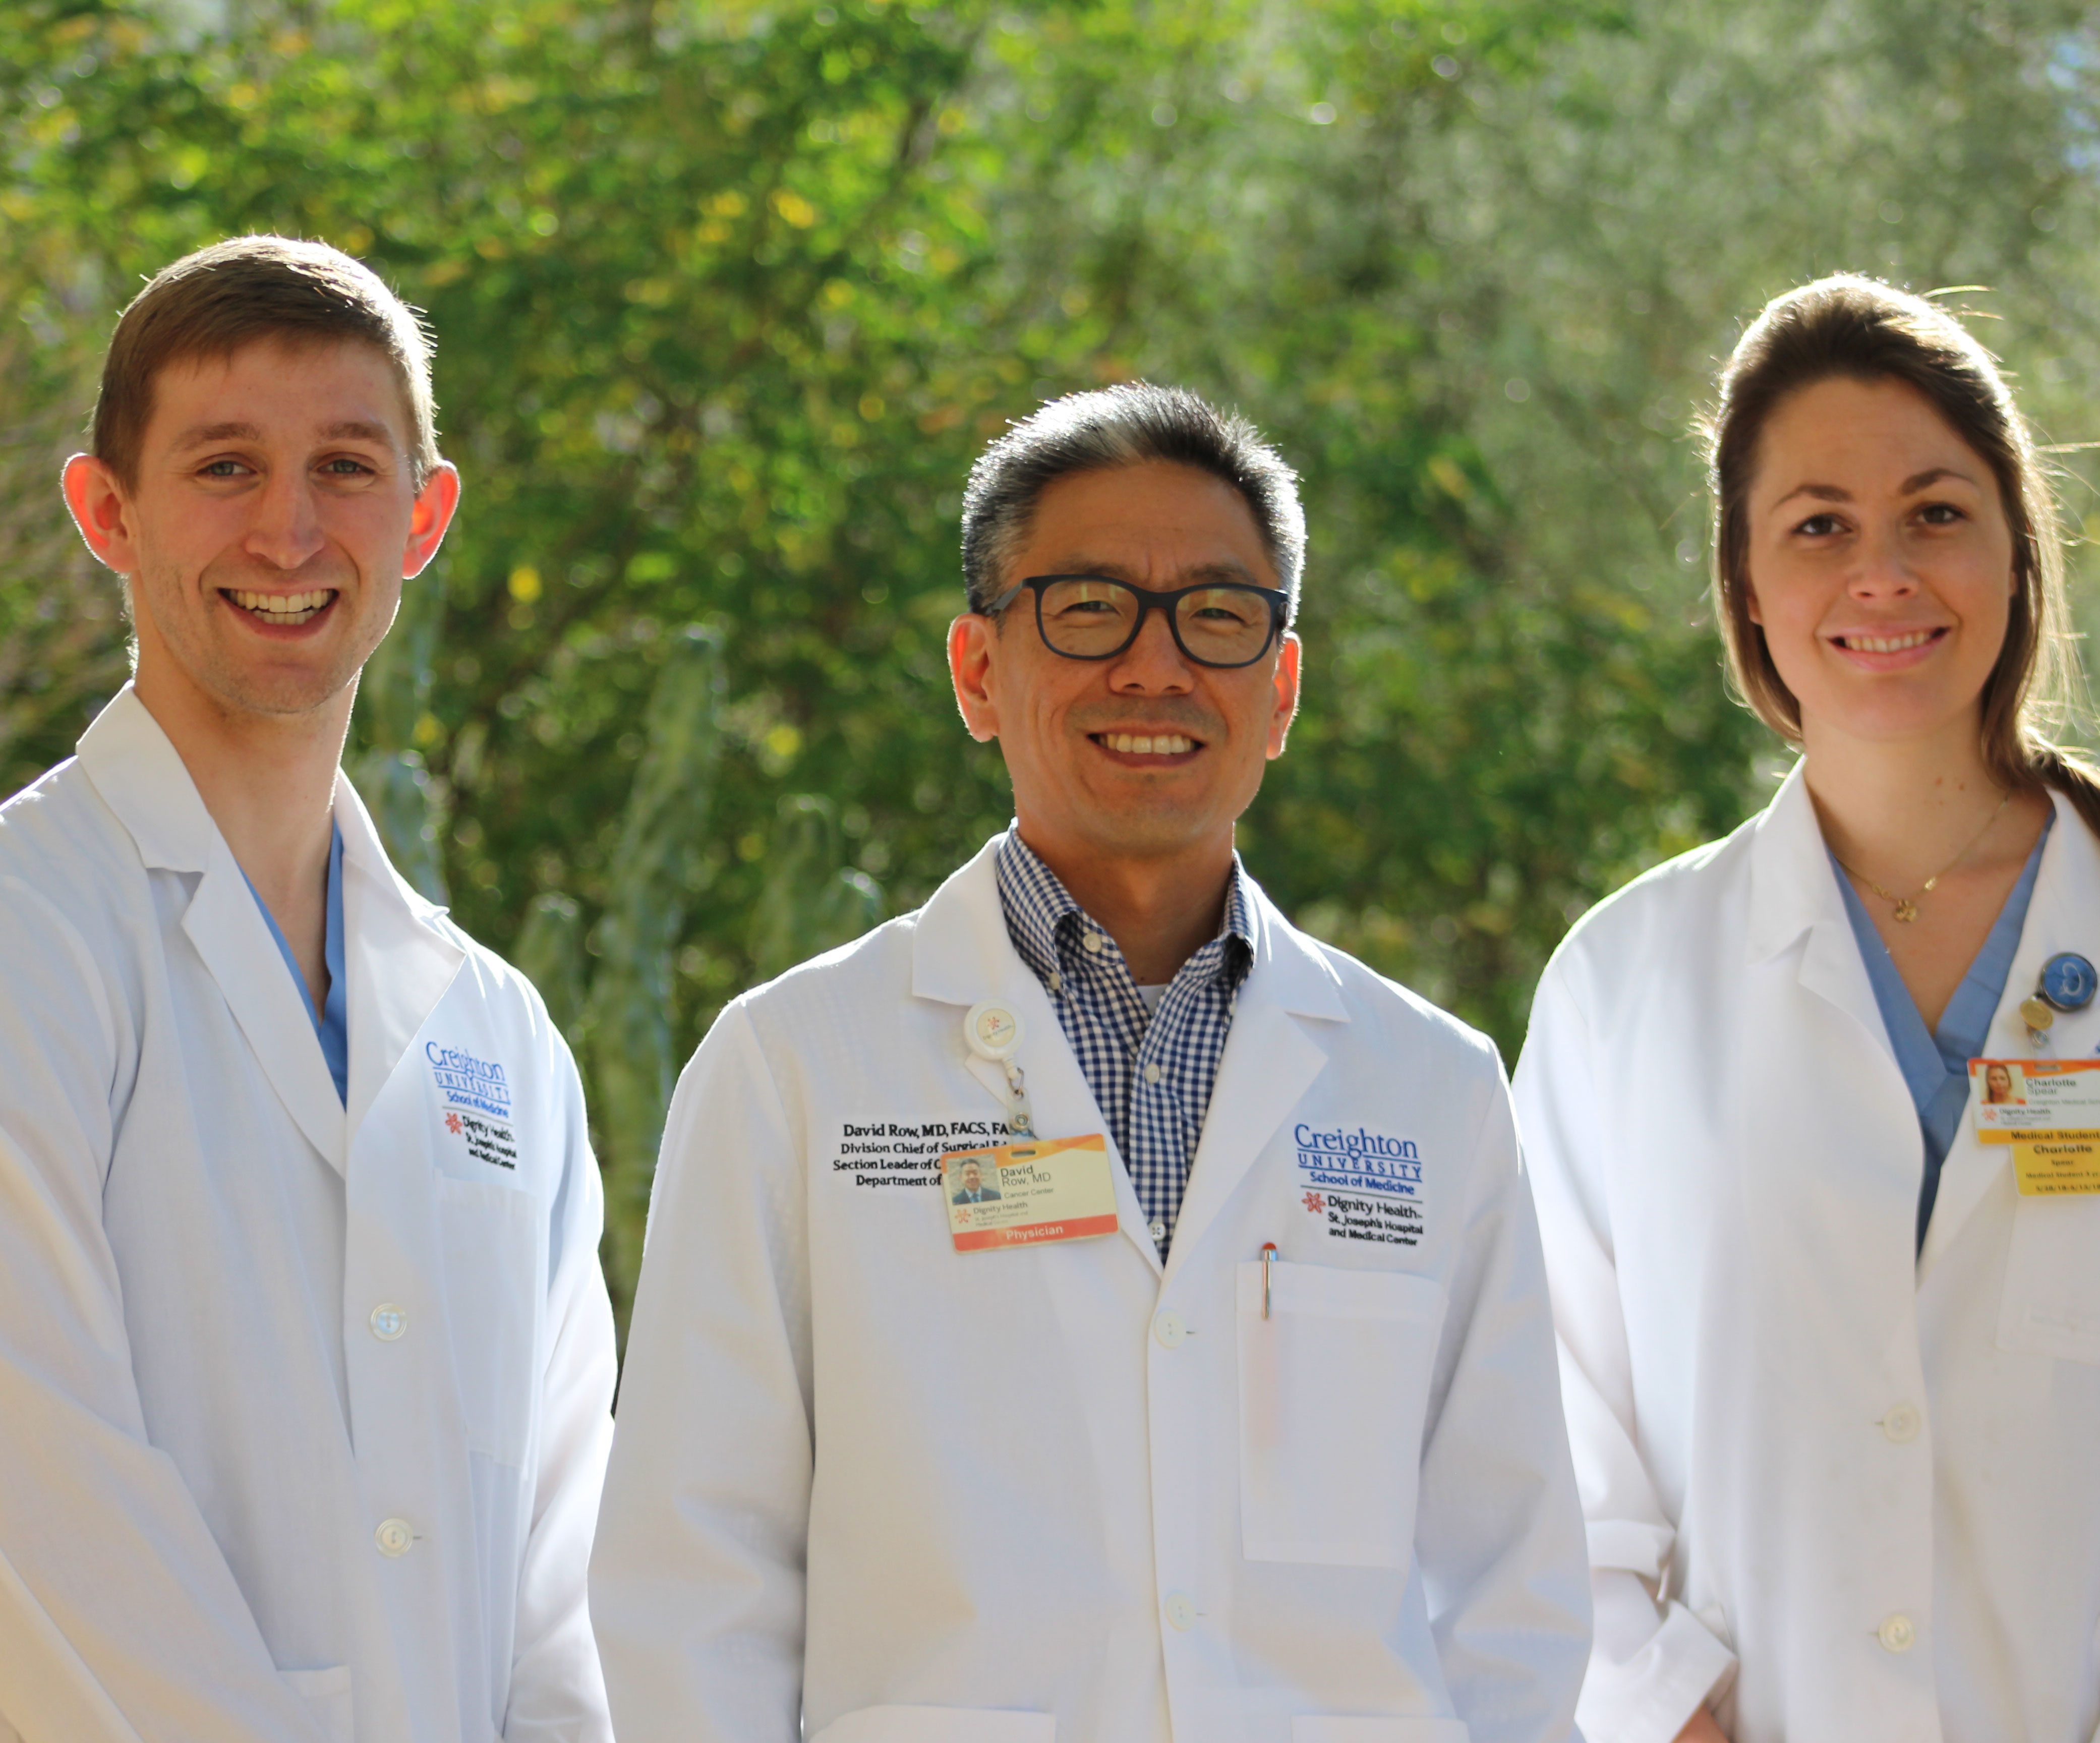 L to R: Patrick Isola, Creighton medical student, David Row, MD, Residency Program Director, and Charlotte Spear, Creighton medical student